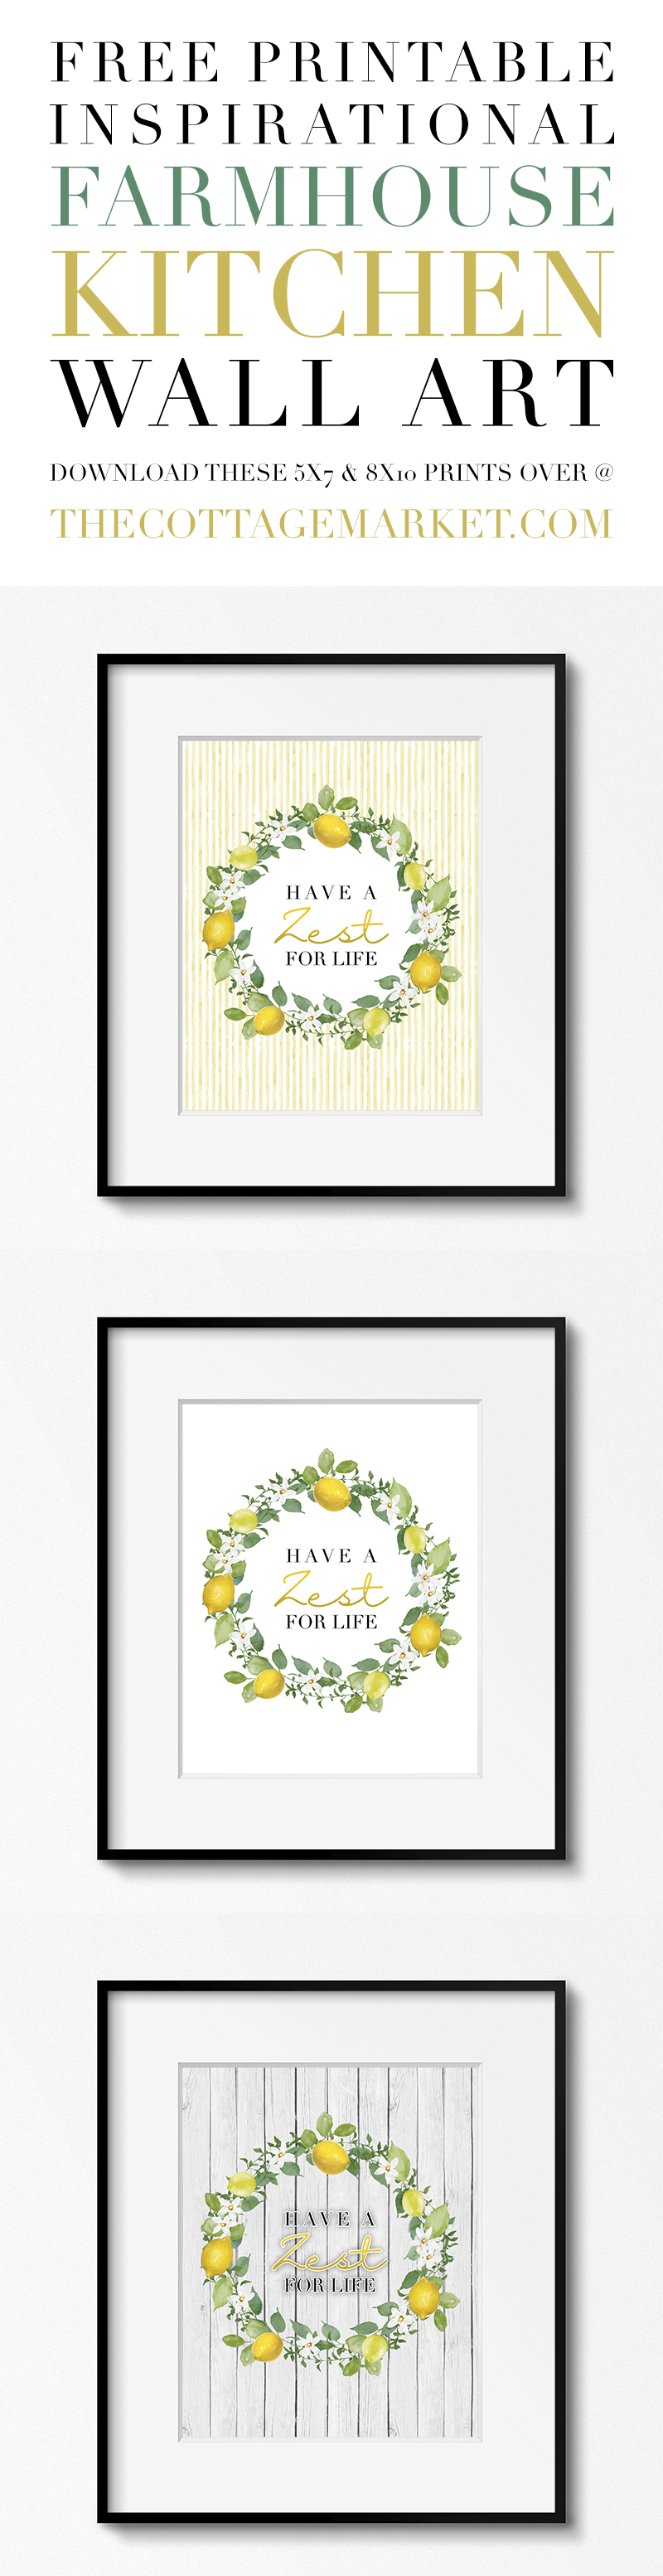 picture about Printable Prints named The Ideal Free of charge Printable Farmhouse Wall Artwork Prints - The